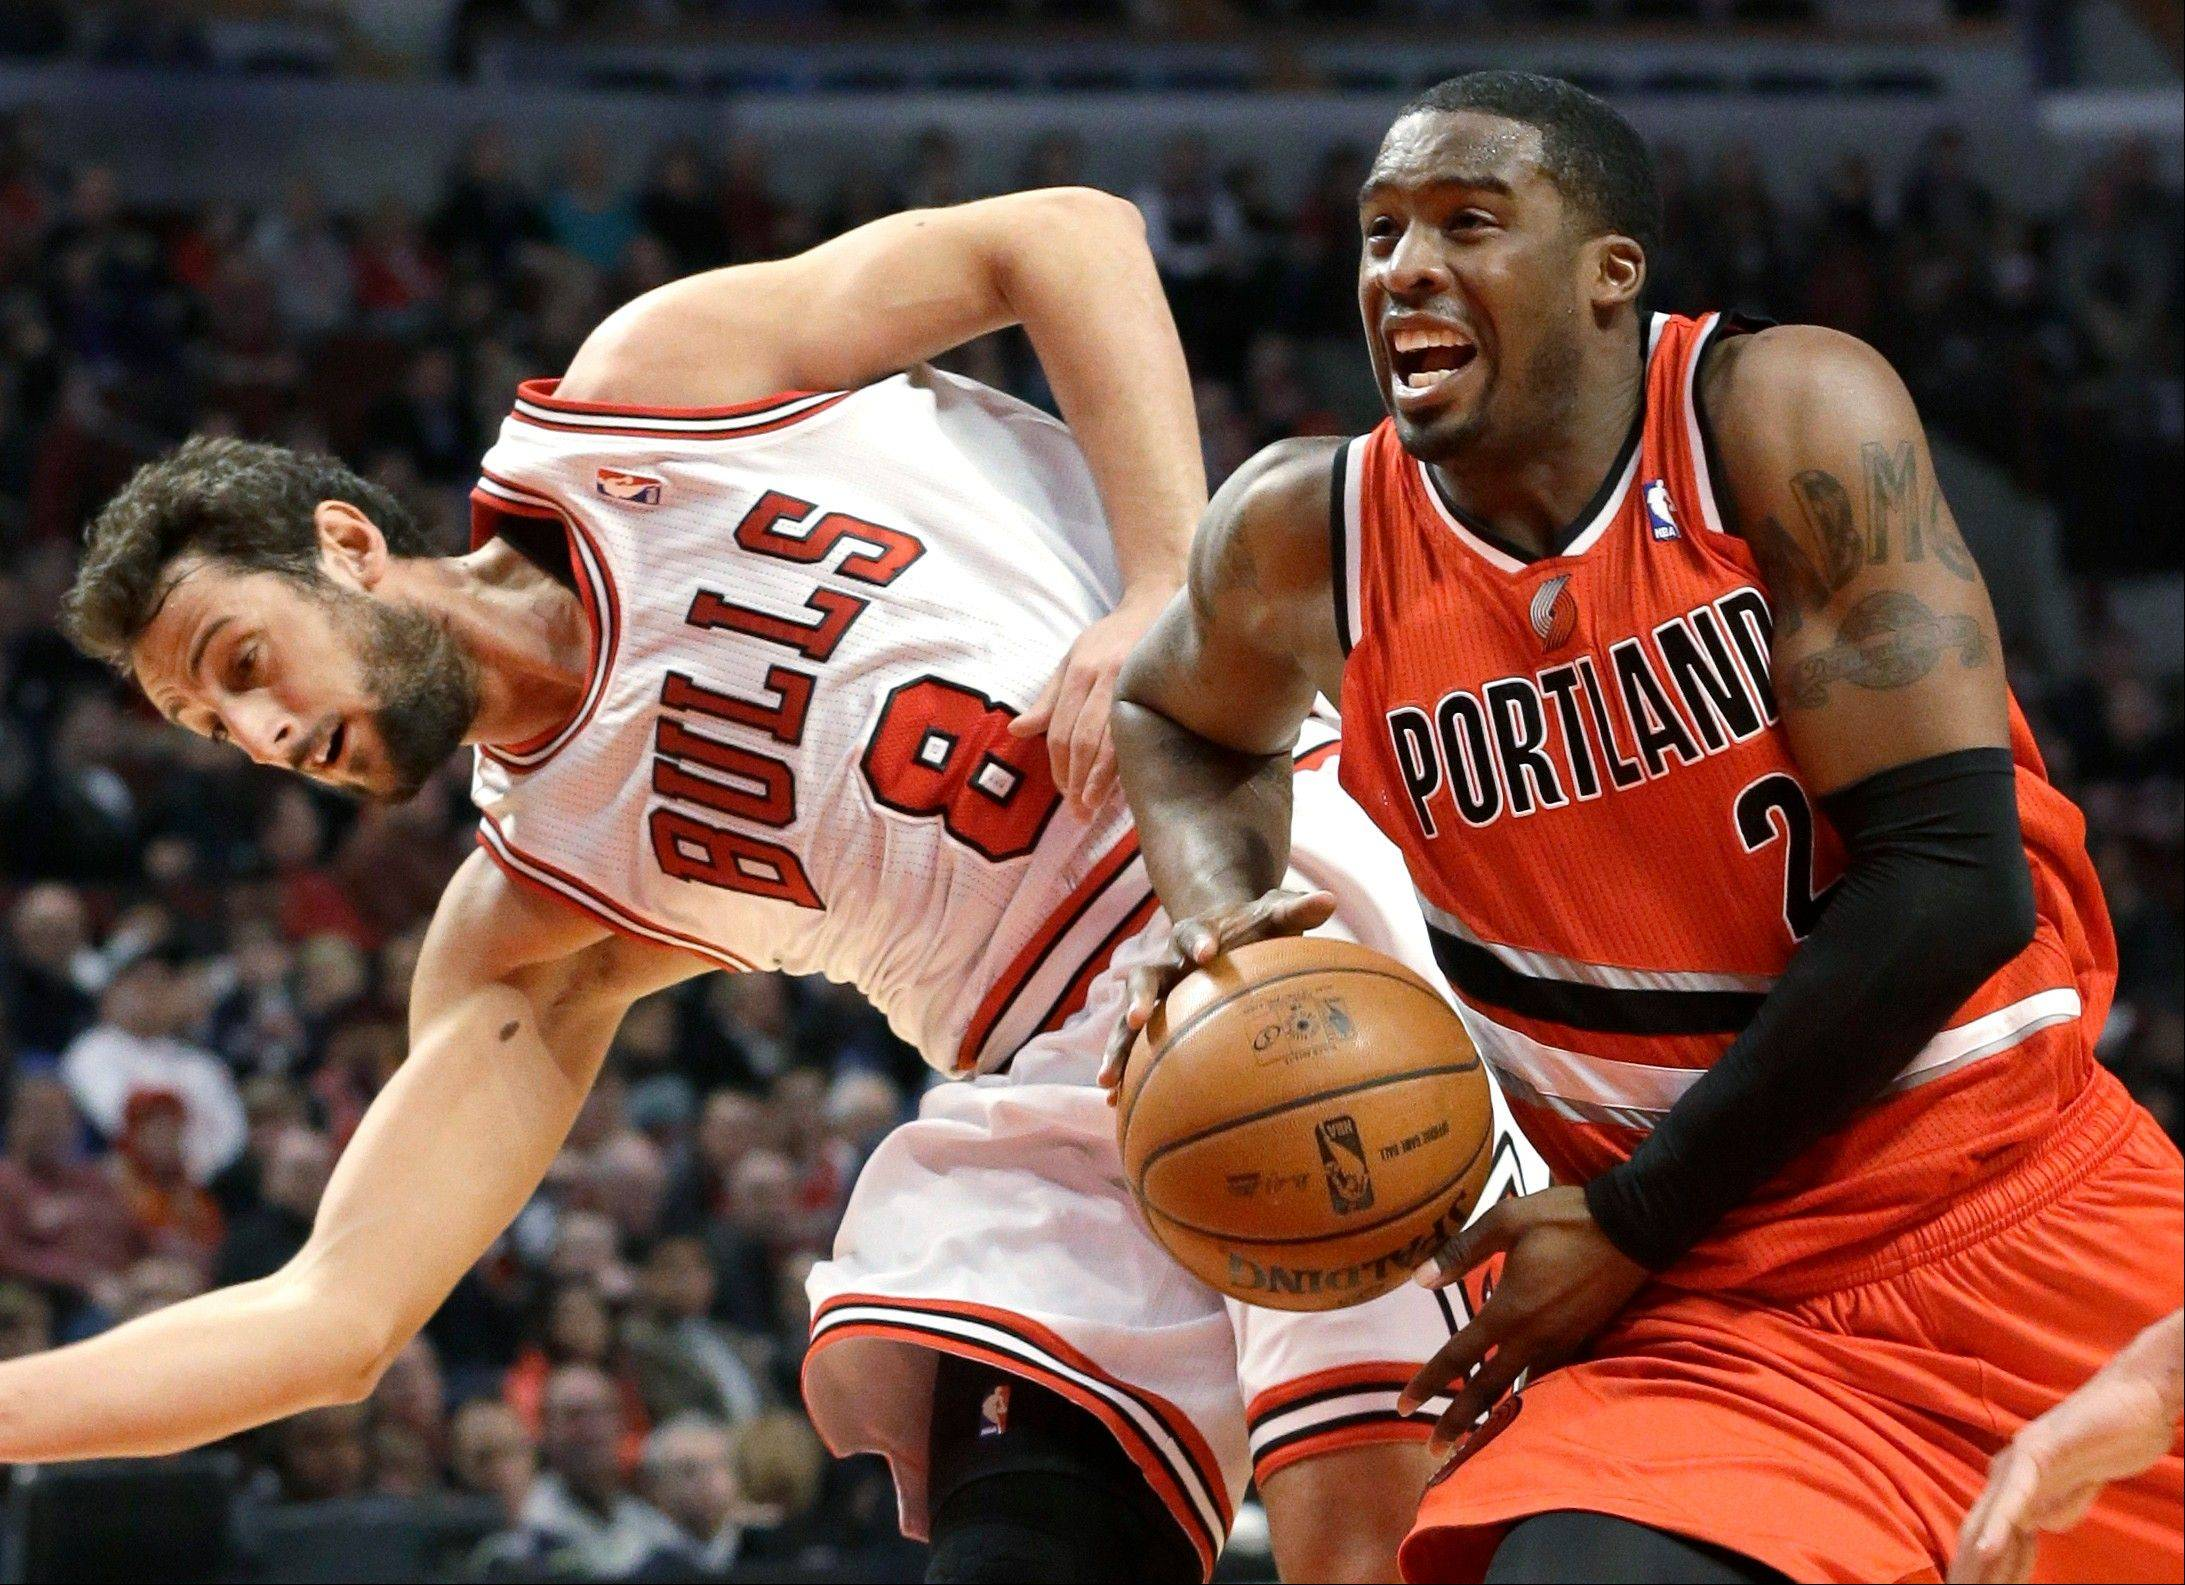 Trail Blazers guard Wesley Matthews leaves the Bulls' Marco Belinelli in his wake on a drive to the basket Thursday night at the United Center.